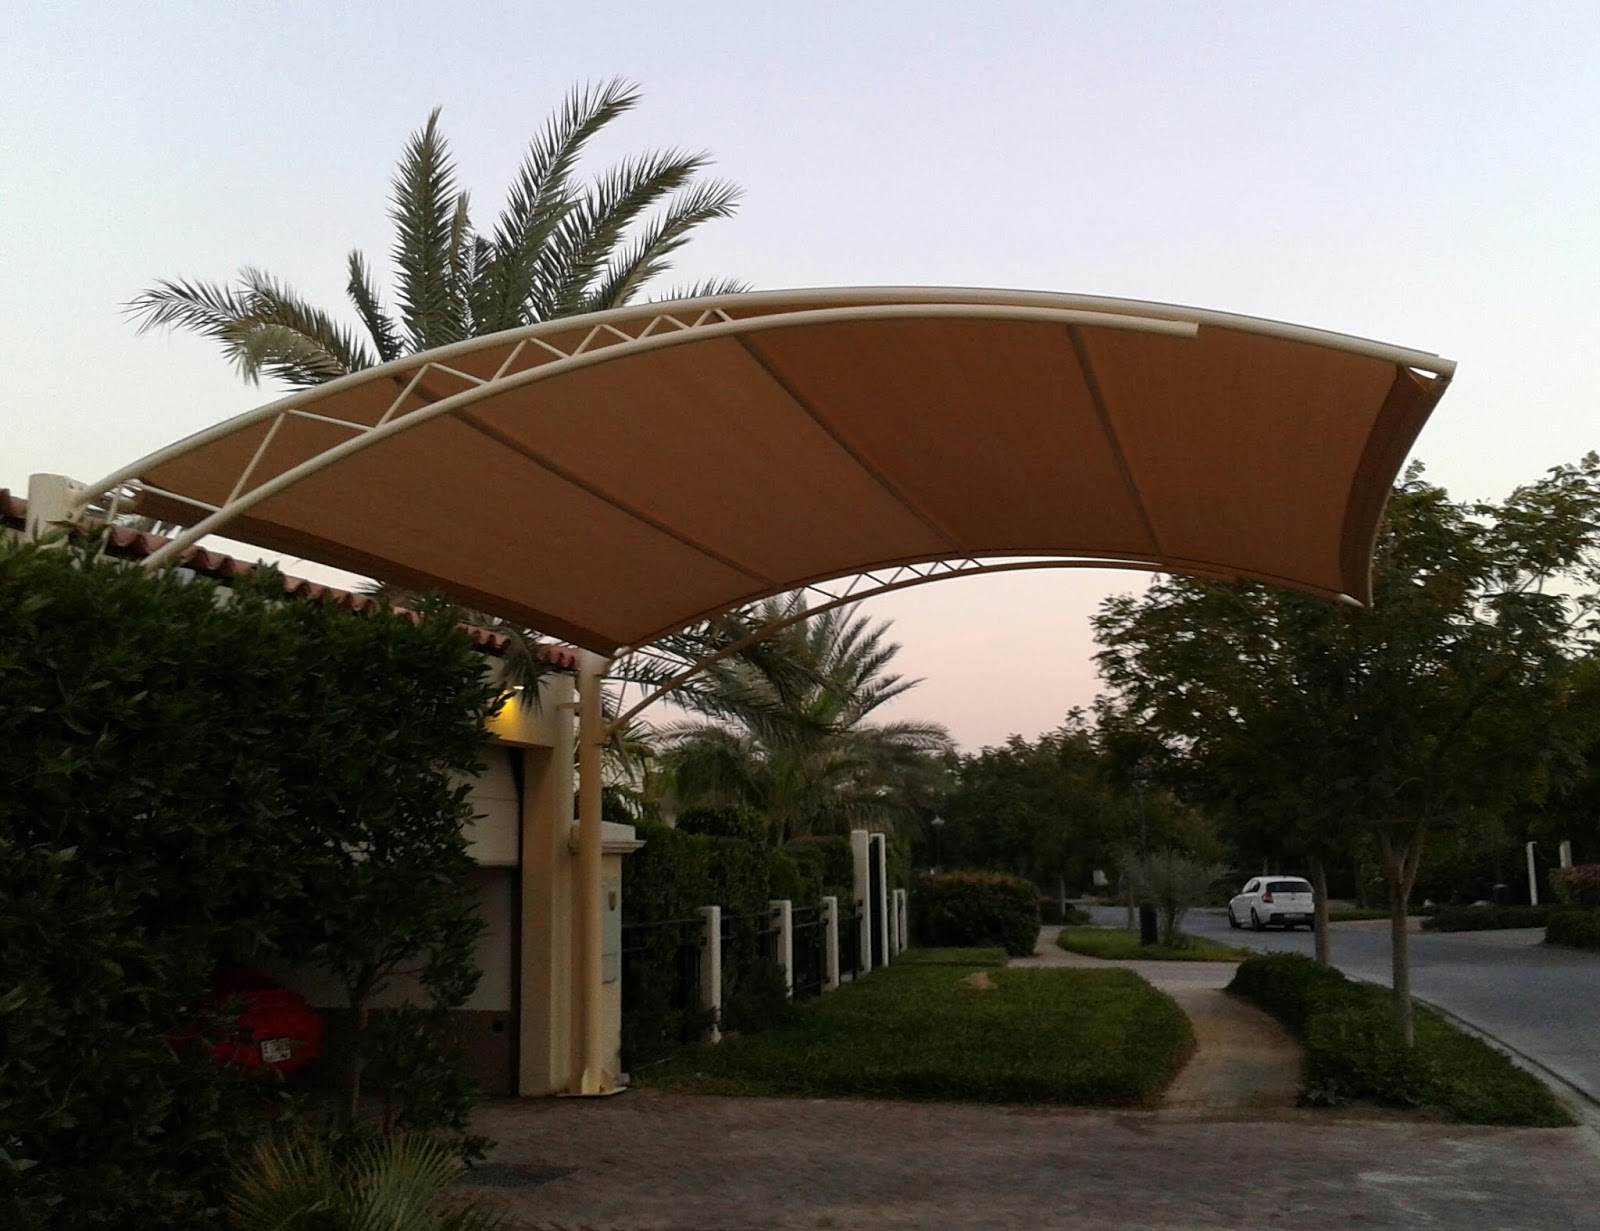 Car Park Shades Sail Car Parking Shades Sail Dubai Shades Fabric Dubai HDPE Car Park Shades Dubai UAE : parking canopy manufacturer - memphite.com